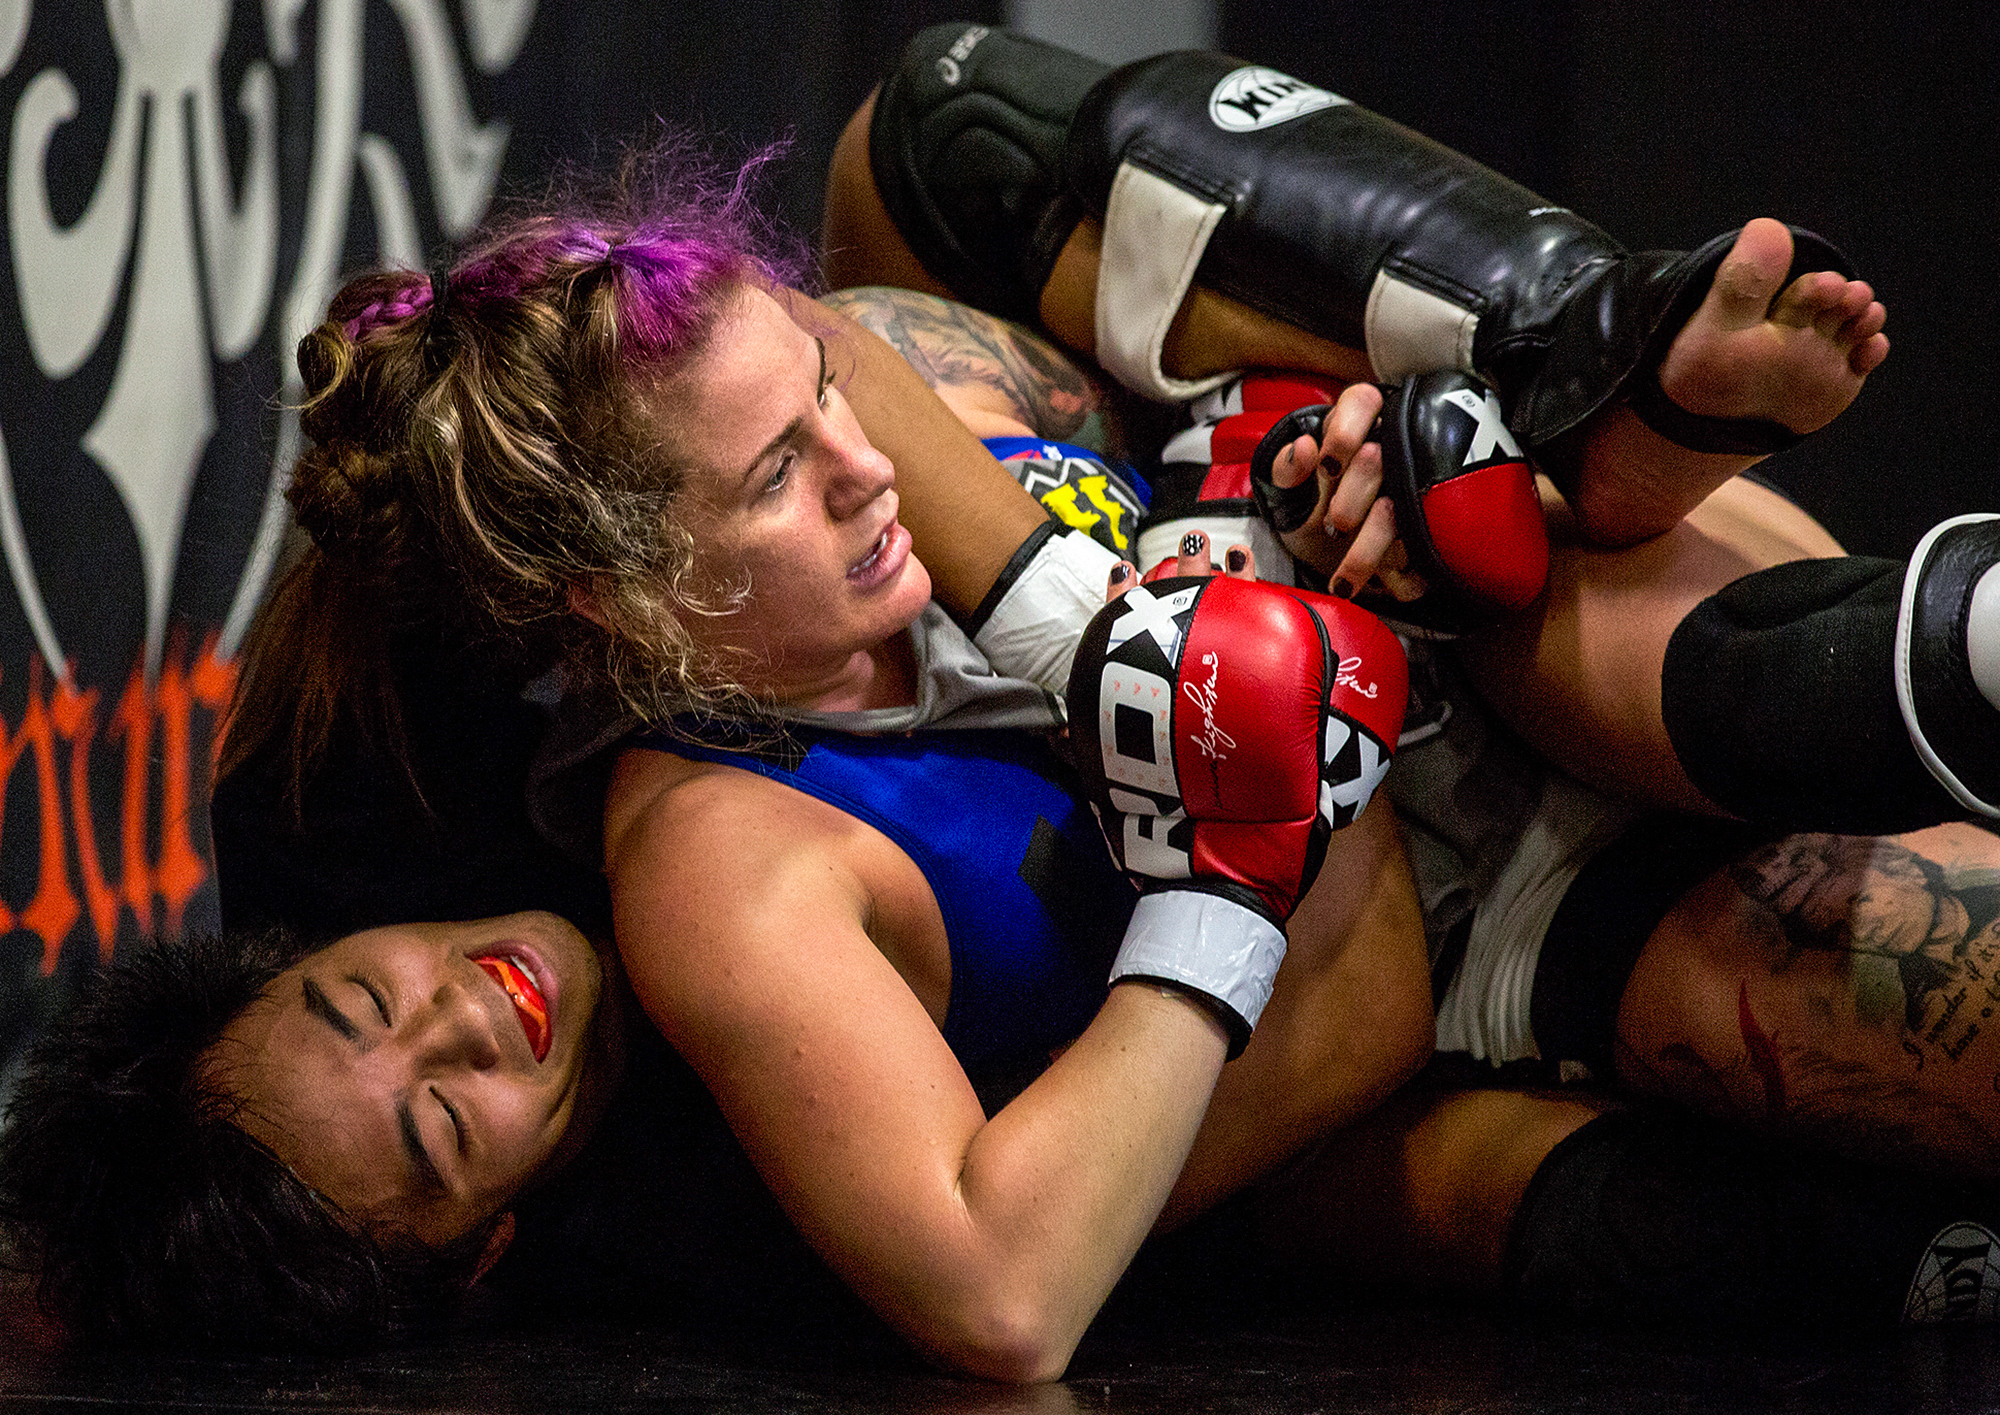 Mazany is one of 60 female fighters and 700 male fighters enrolled in a Cleveland Clinic study that's delving into how concussions might differ between women and men. (Photo by Bridget Bennett for NPR)